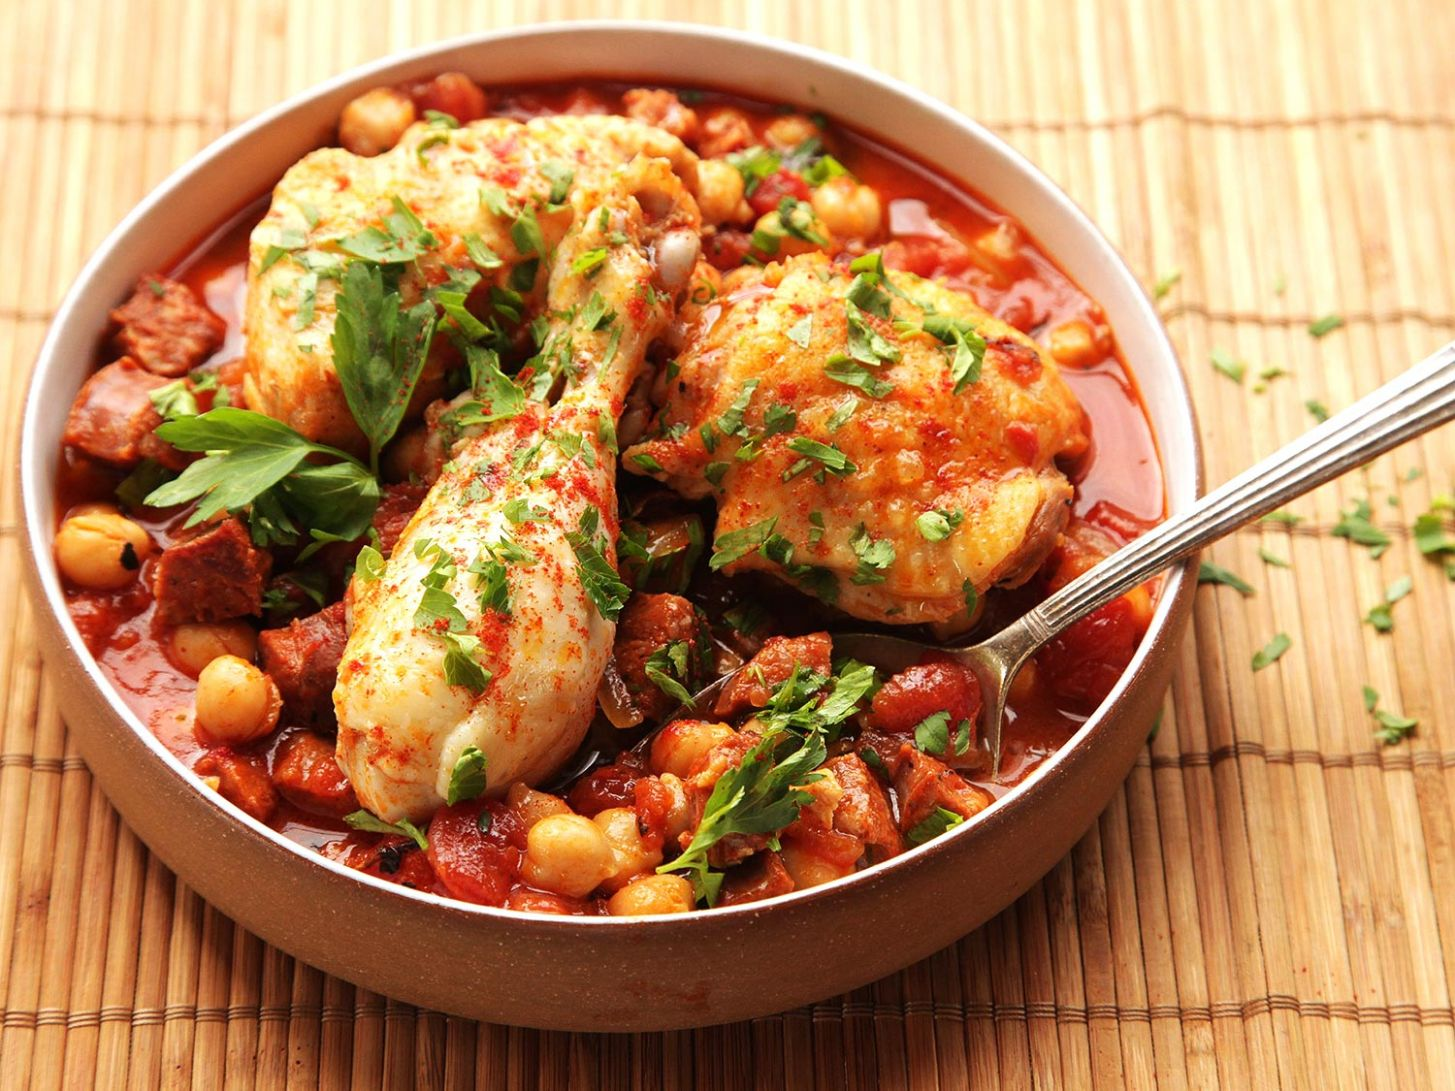 12-Minute Pressure Cooker Chicken With Chickpeas, Tomatoes, and Chorizo  Recipe - Recipes Chicken In Pressure Cooker